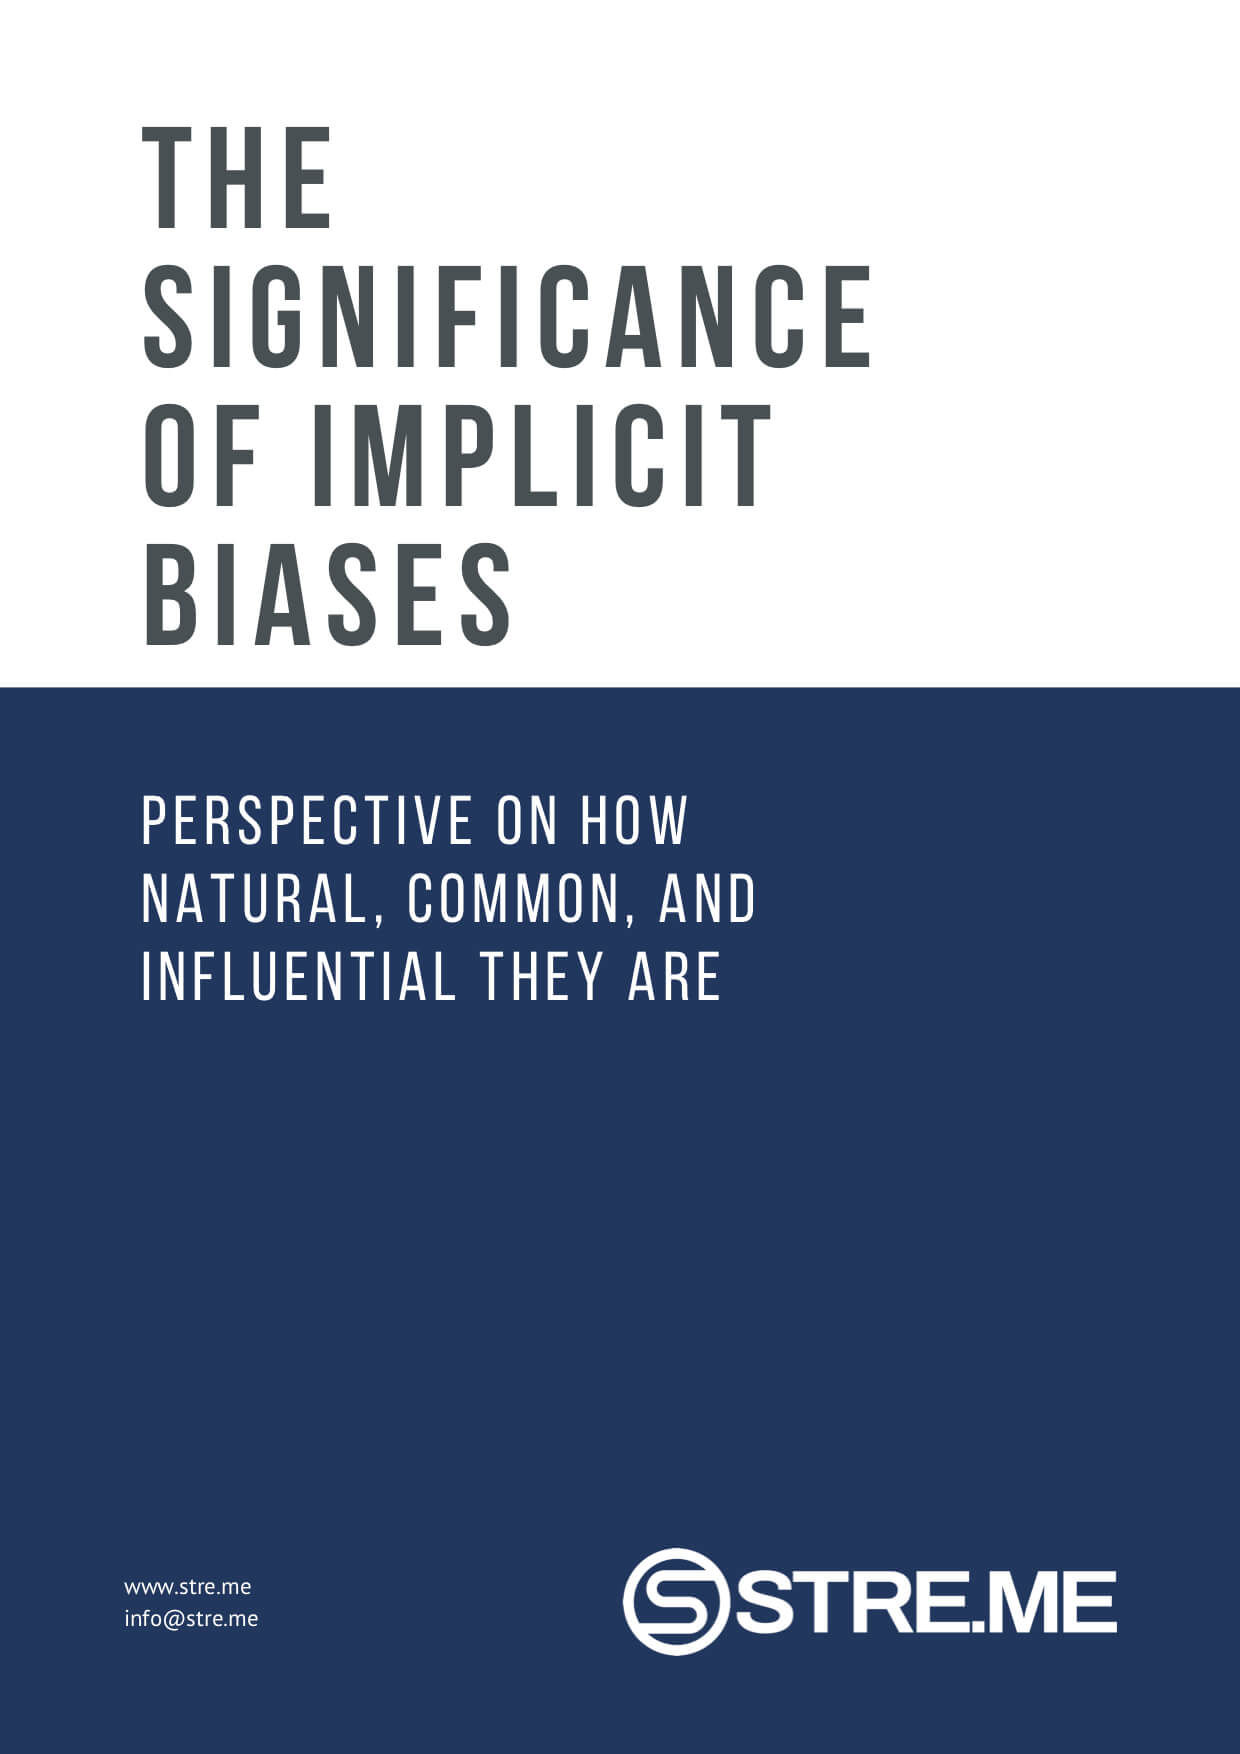 The Significance of Implicit Biases